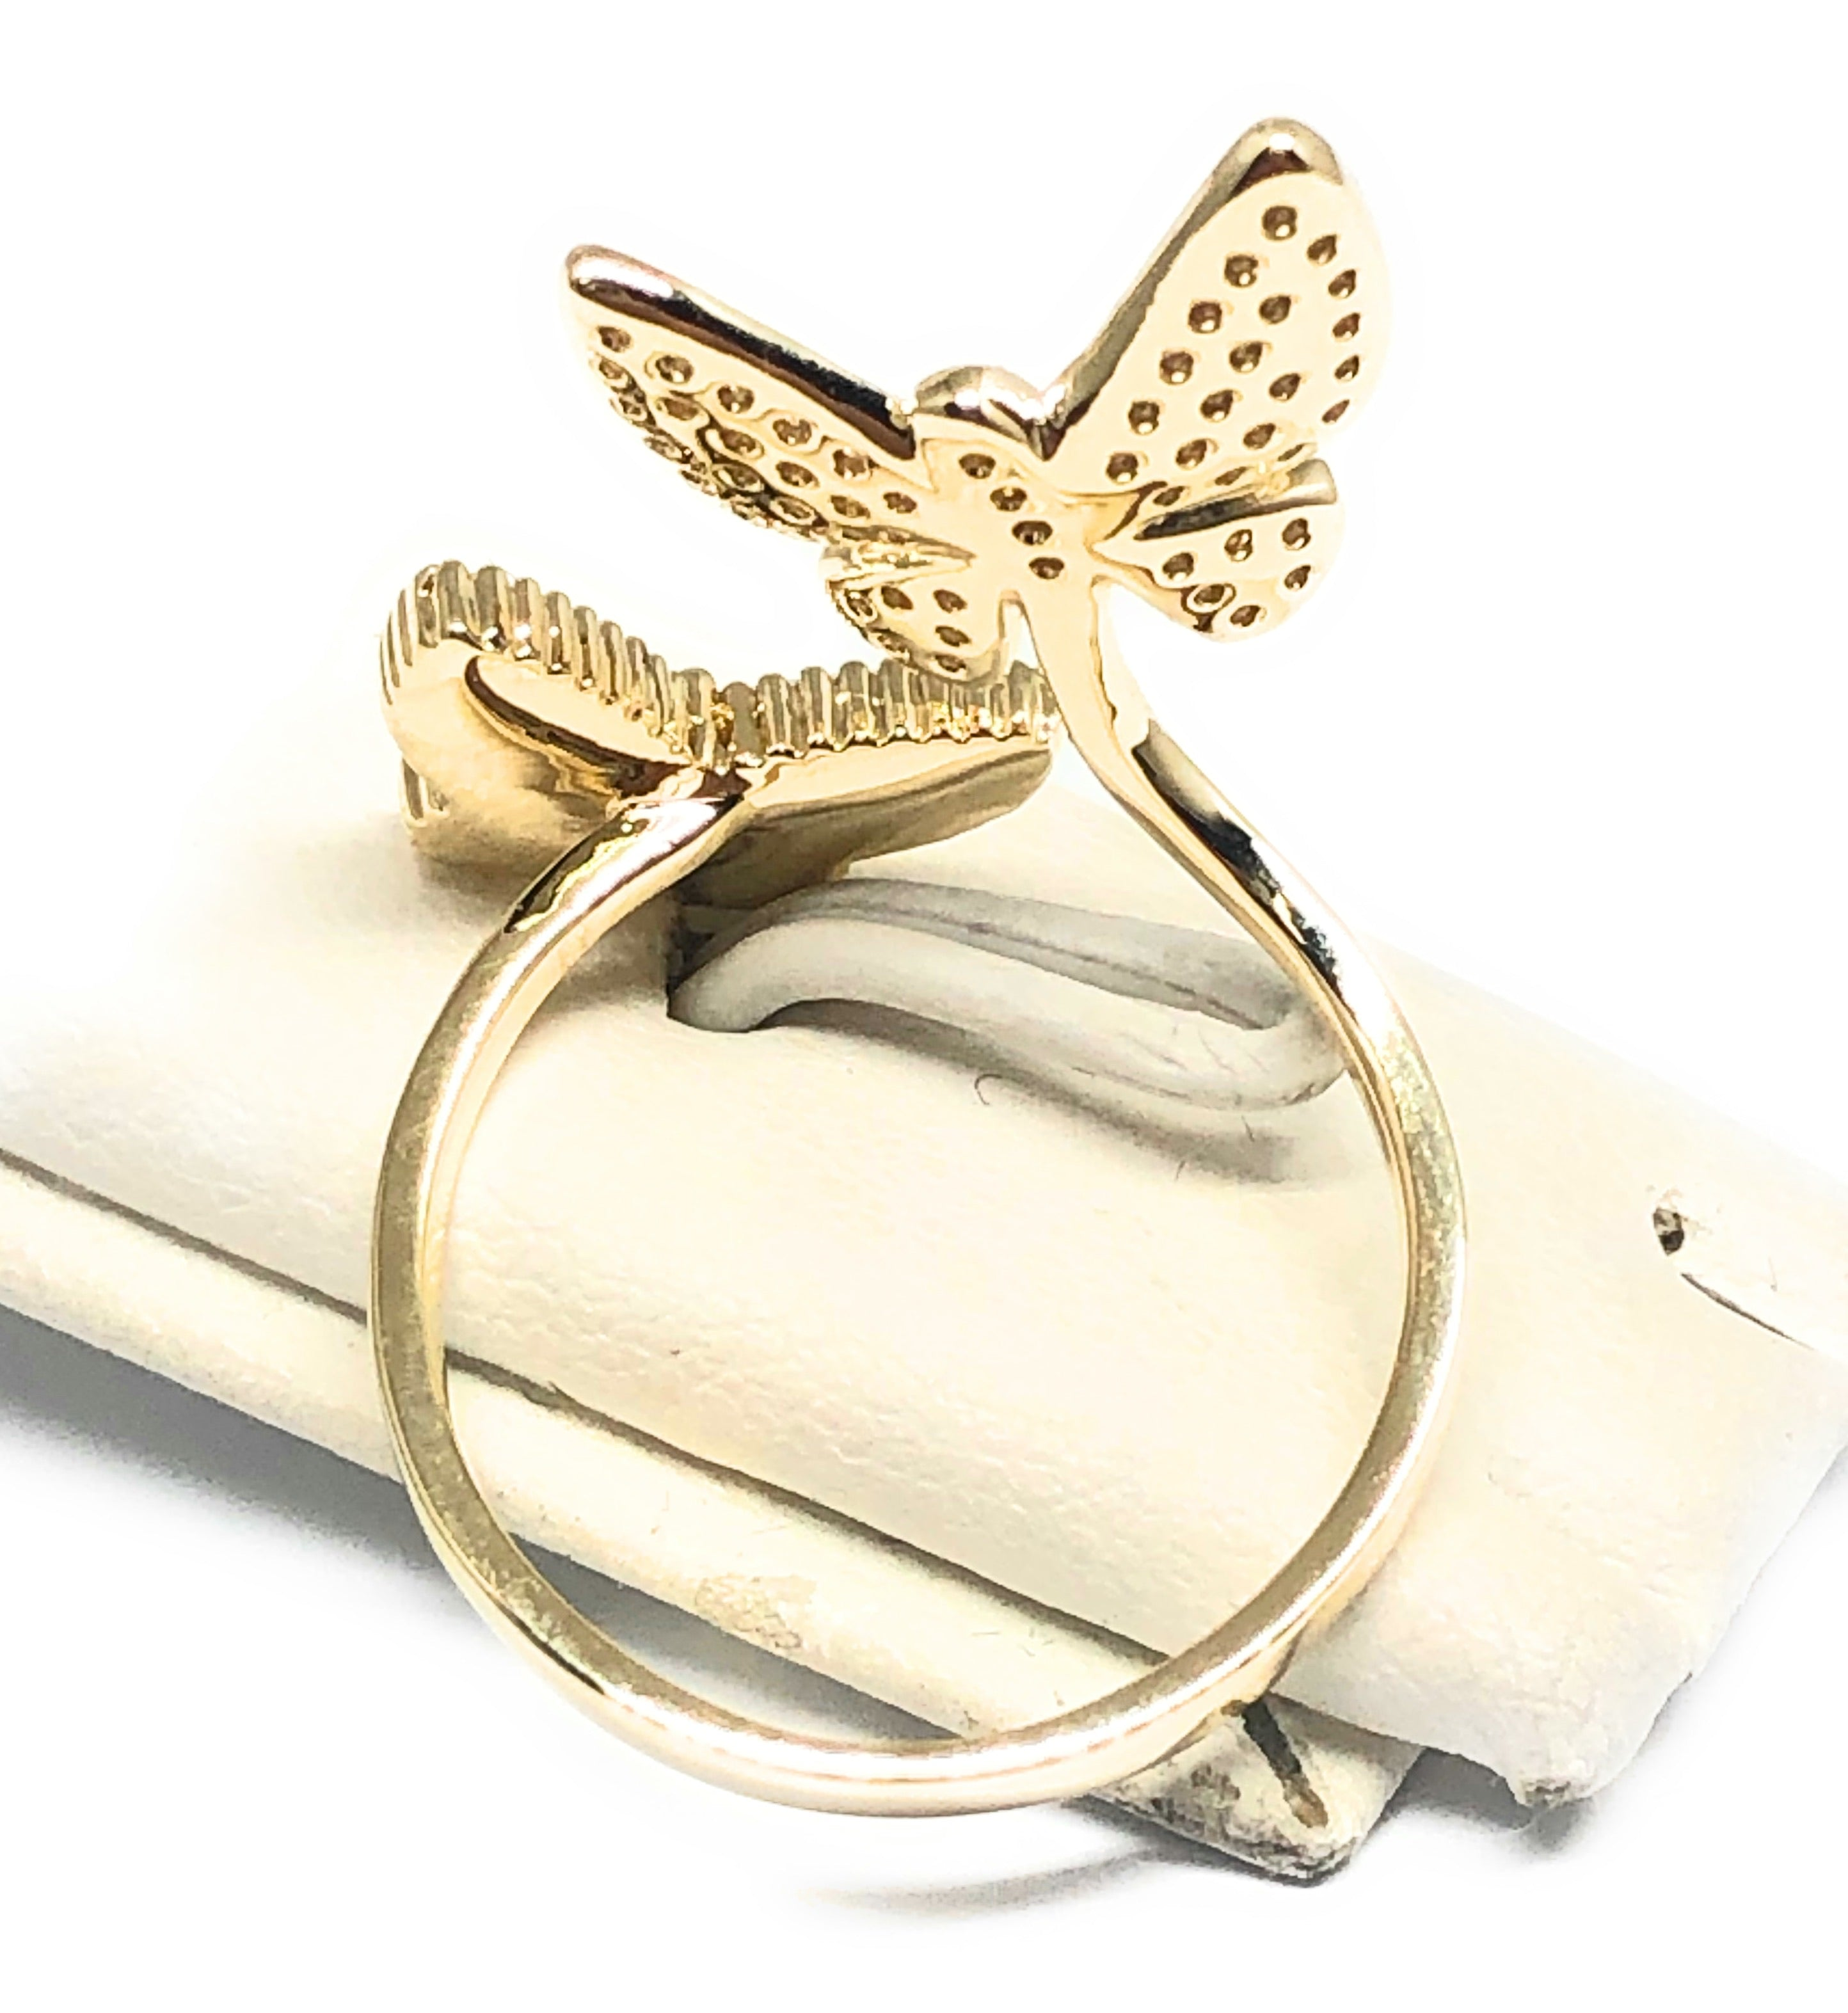 Gold Plated Adjustable Double Butterfly CZ Ring Sizes 6-12 Anillo